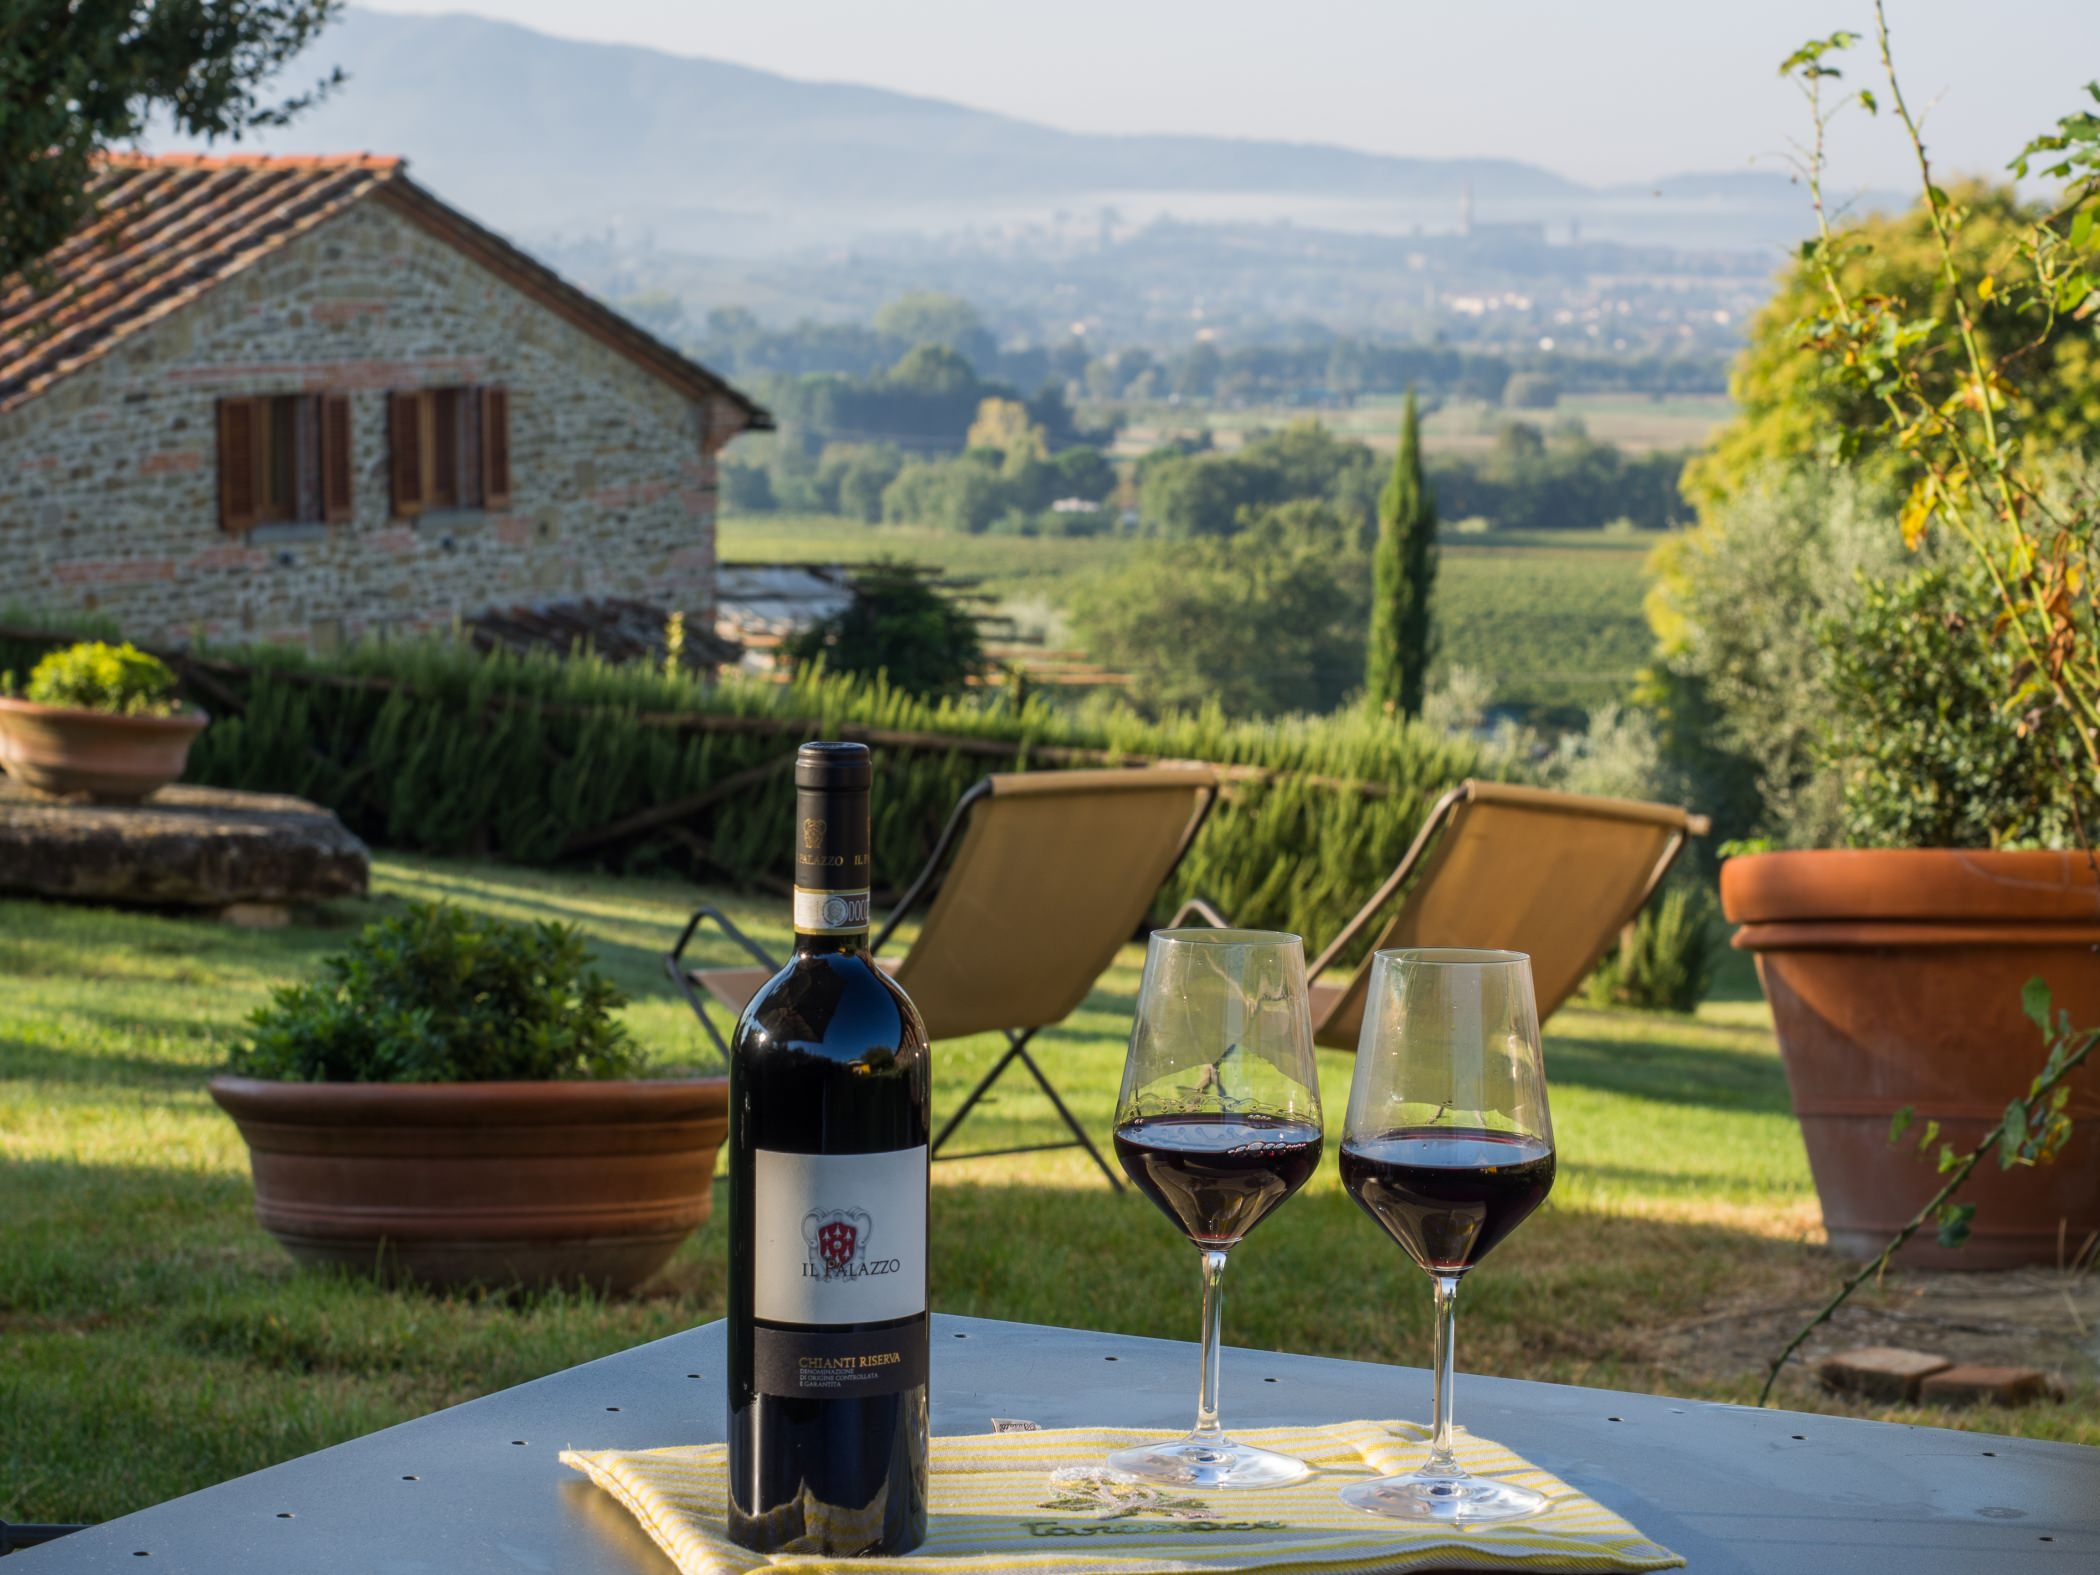 Tuscan Dinner - Date: 9 August, 2019Time: 7pm$110 per personDiscover the delicacies of Tuscany with Carmine's Tuscan inspired menu and paired wines from Il PalazzoPlaces are limited Book Now